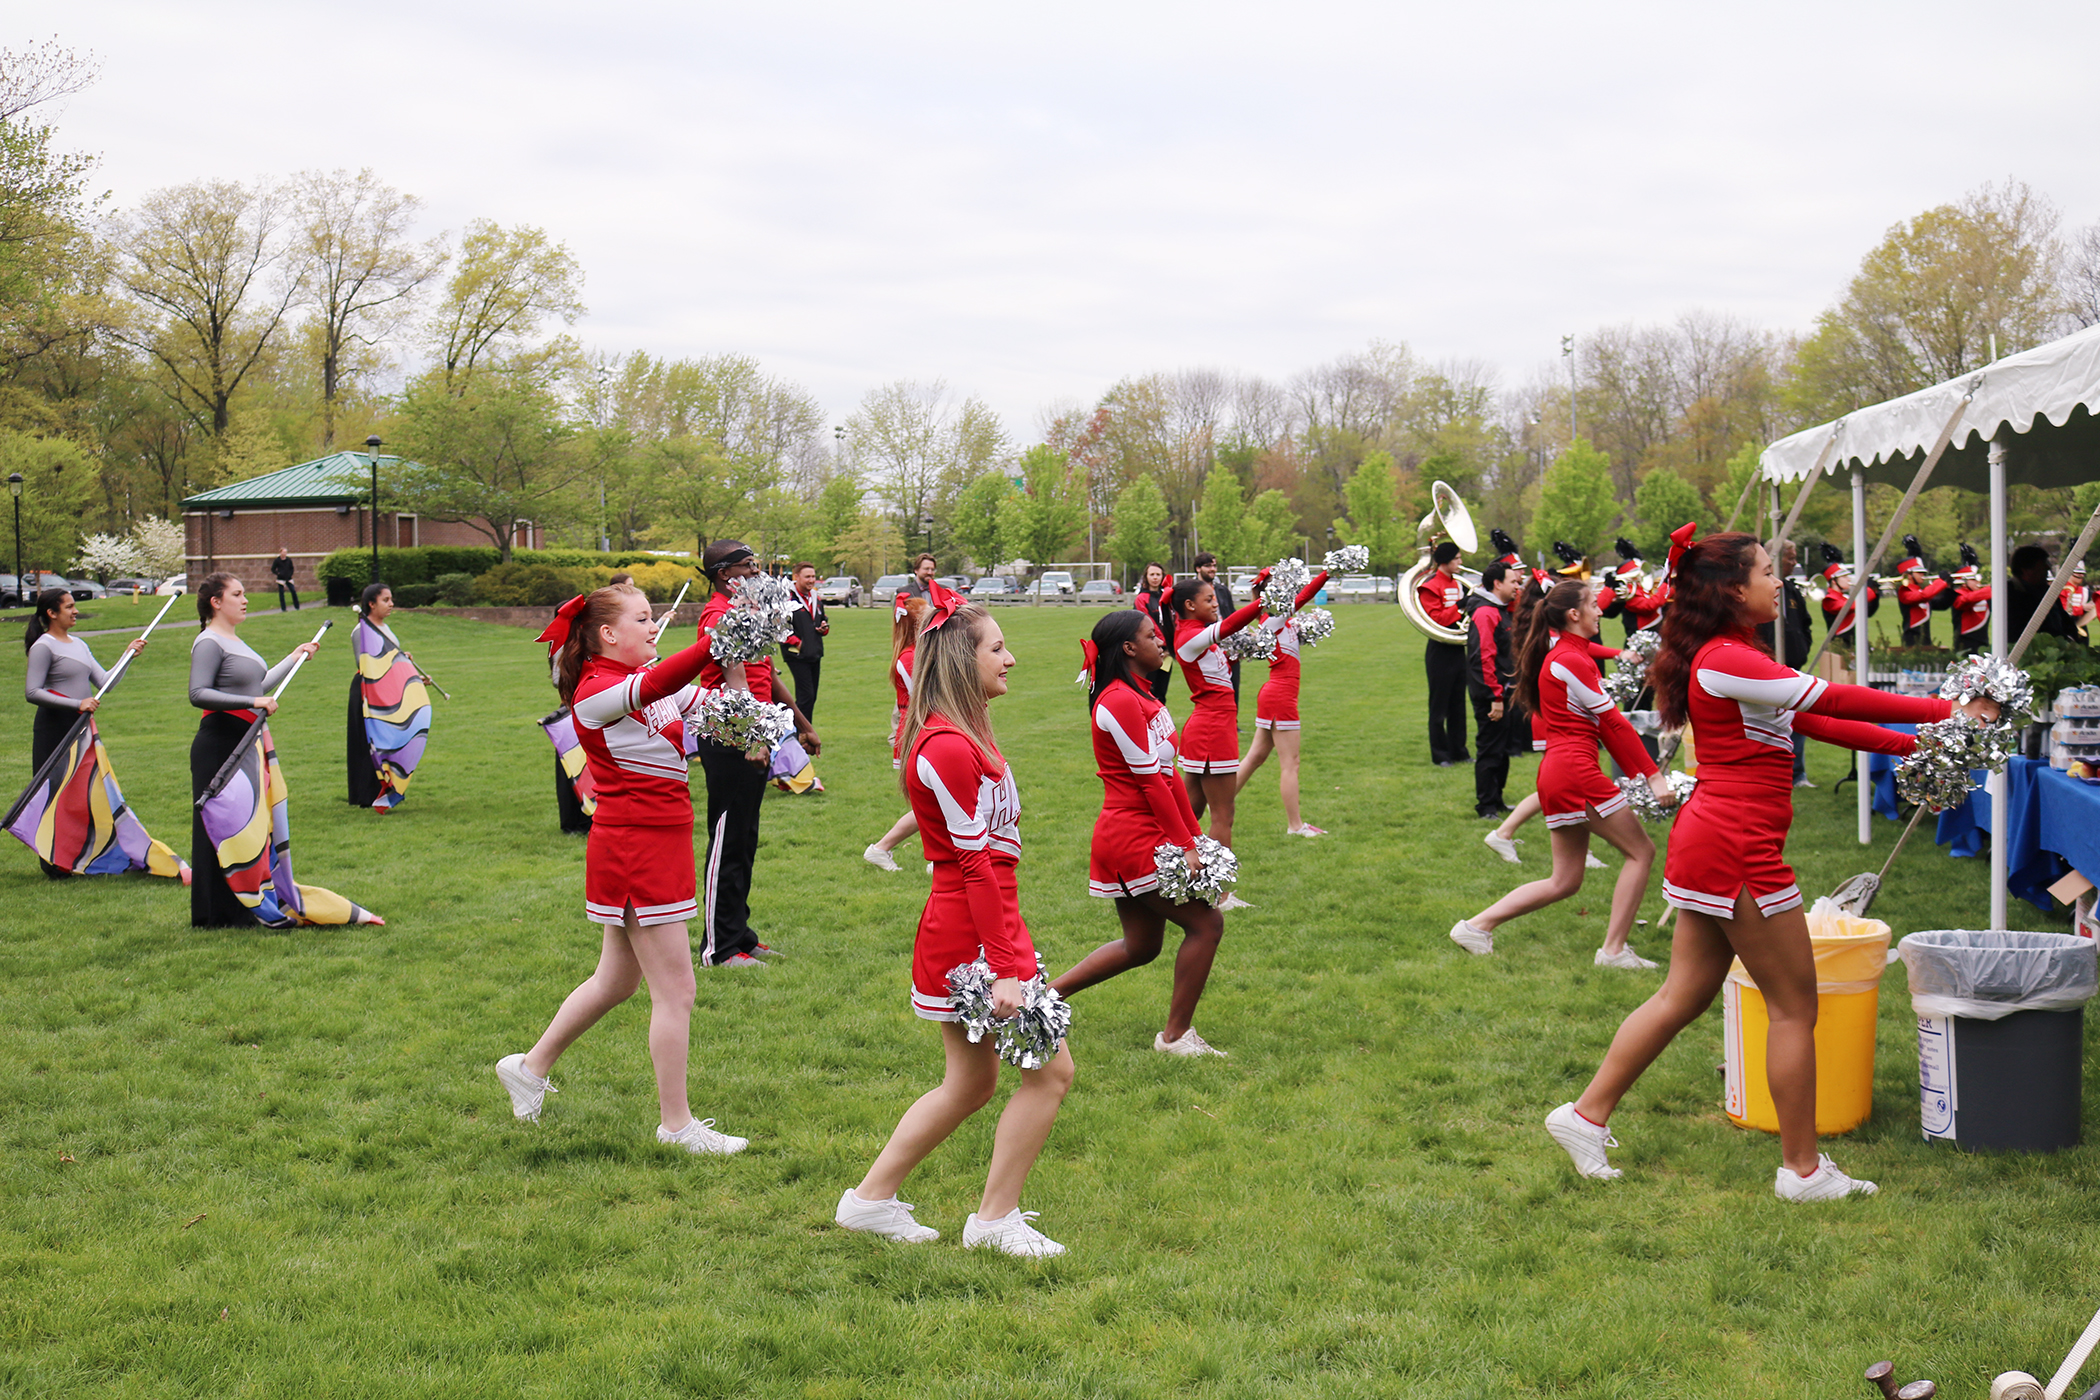 <strong>Parsippany, New Jersey. </strong>Parsippany may be only 35 miles from the Big Apple, but it feels like small-town America and is proud of its connection to the outdoors. (For instance, these cheerleaders are celebrating Arbor Day.)